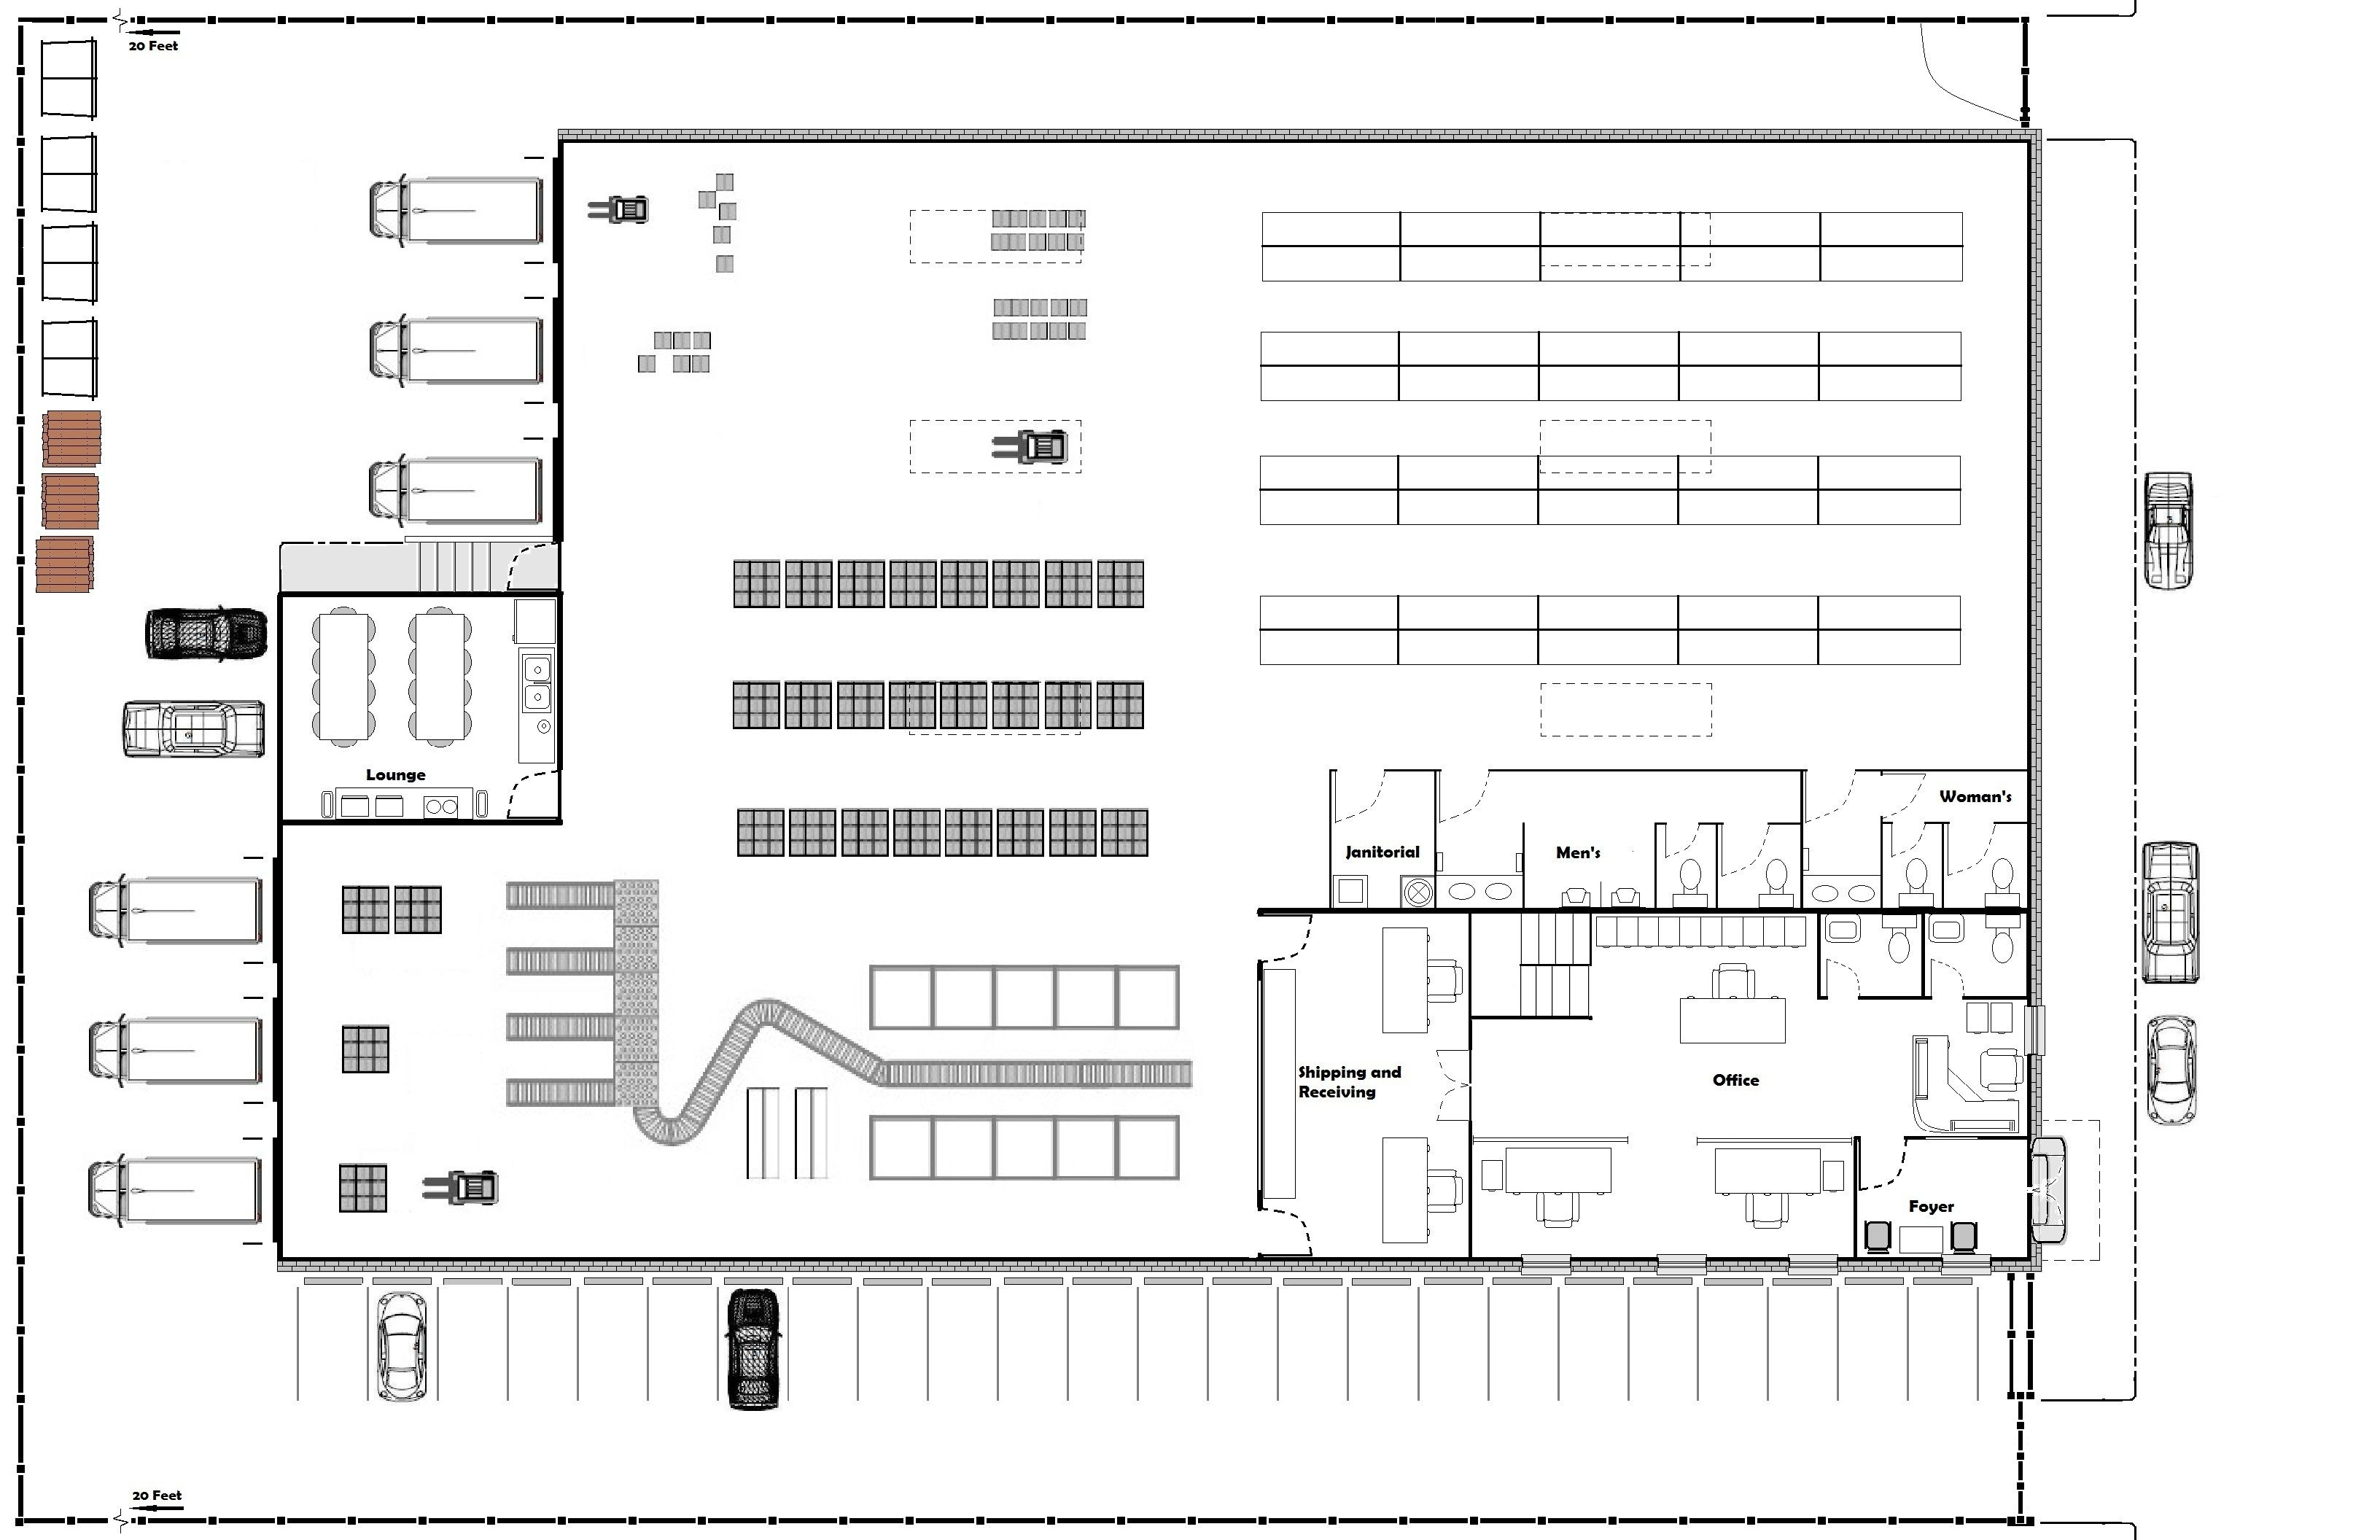 Floor plan of warehouse google search rpg maps for Floor plan search